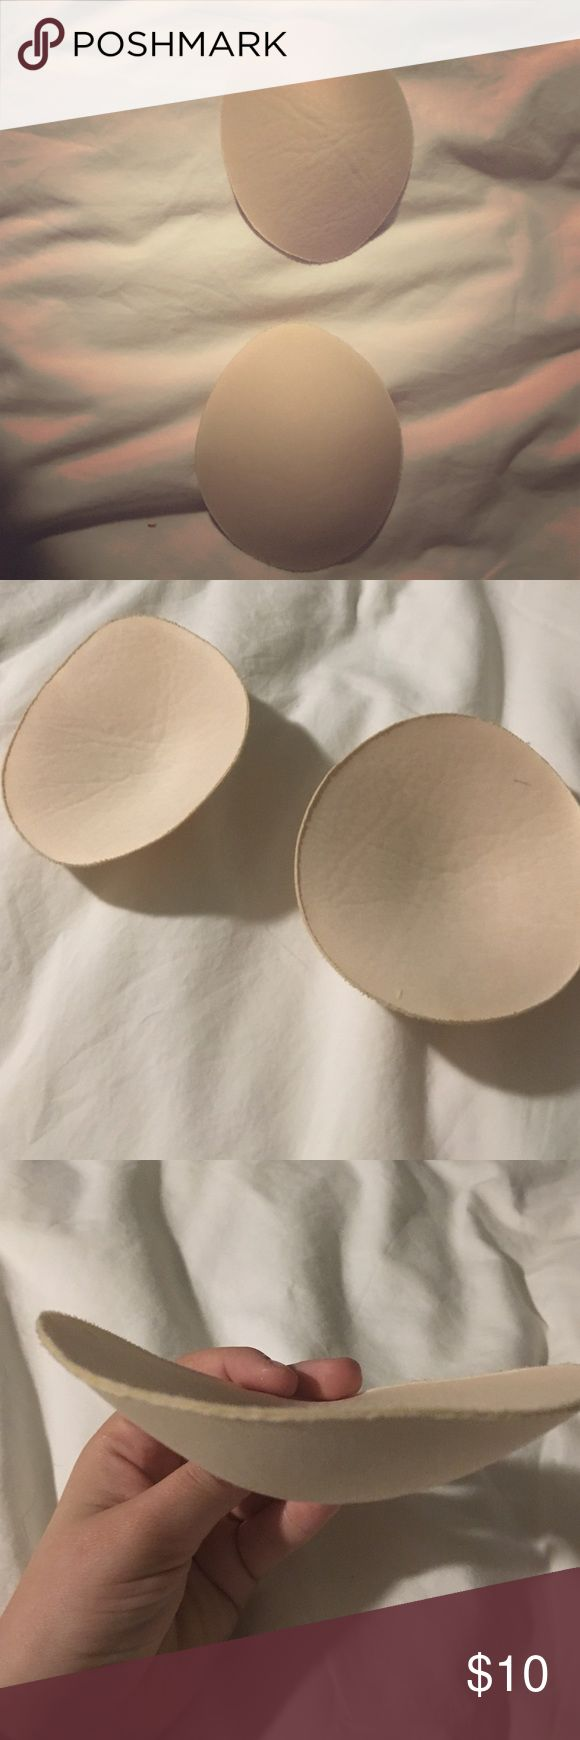 Cream colored removable bra padding This is removable bra padding! Great for swimsuits, or wearing under sports bras for a little extra padding! Haven't worn them :) Intimates & Sleepwear Bras